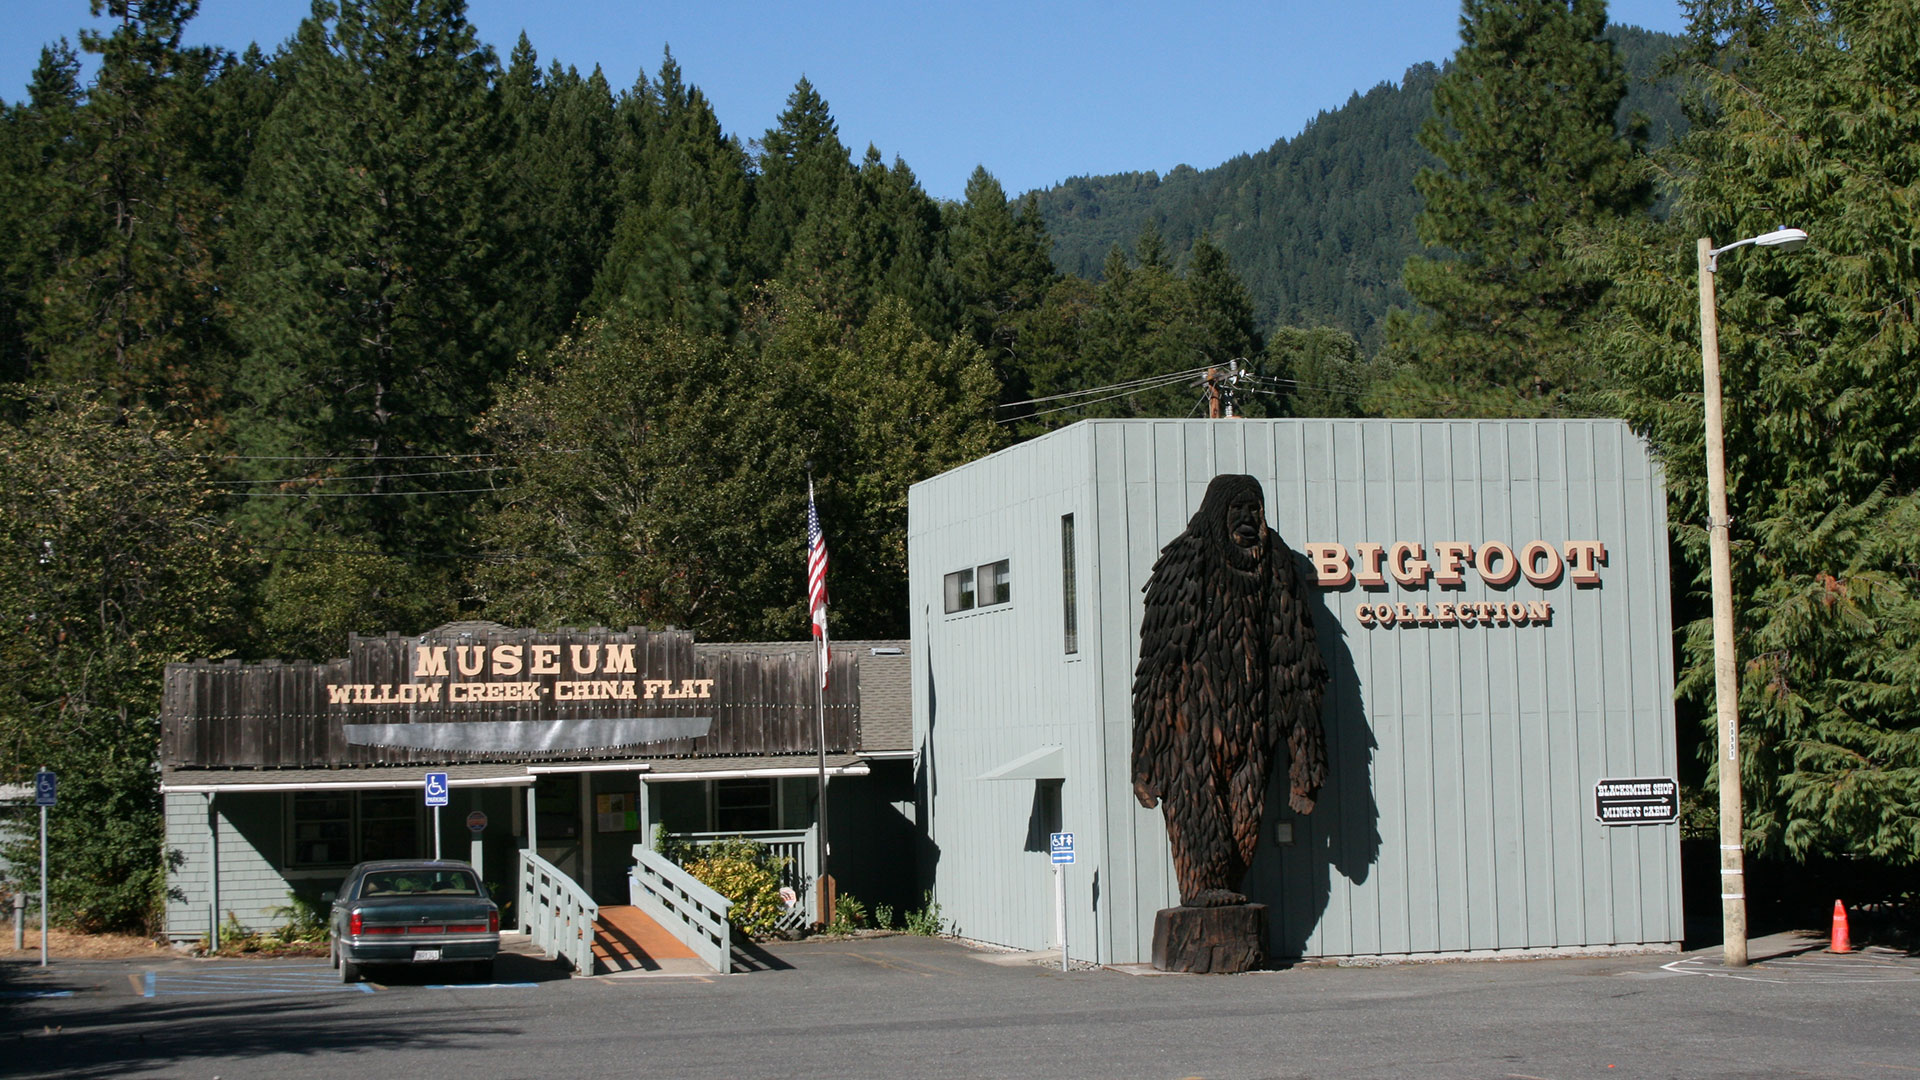 The Bigfoot Museum in Willow Creek, California.